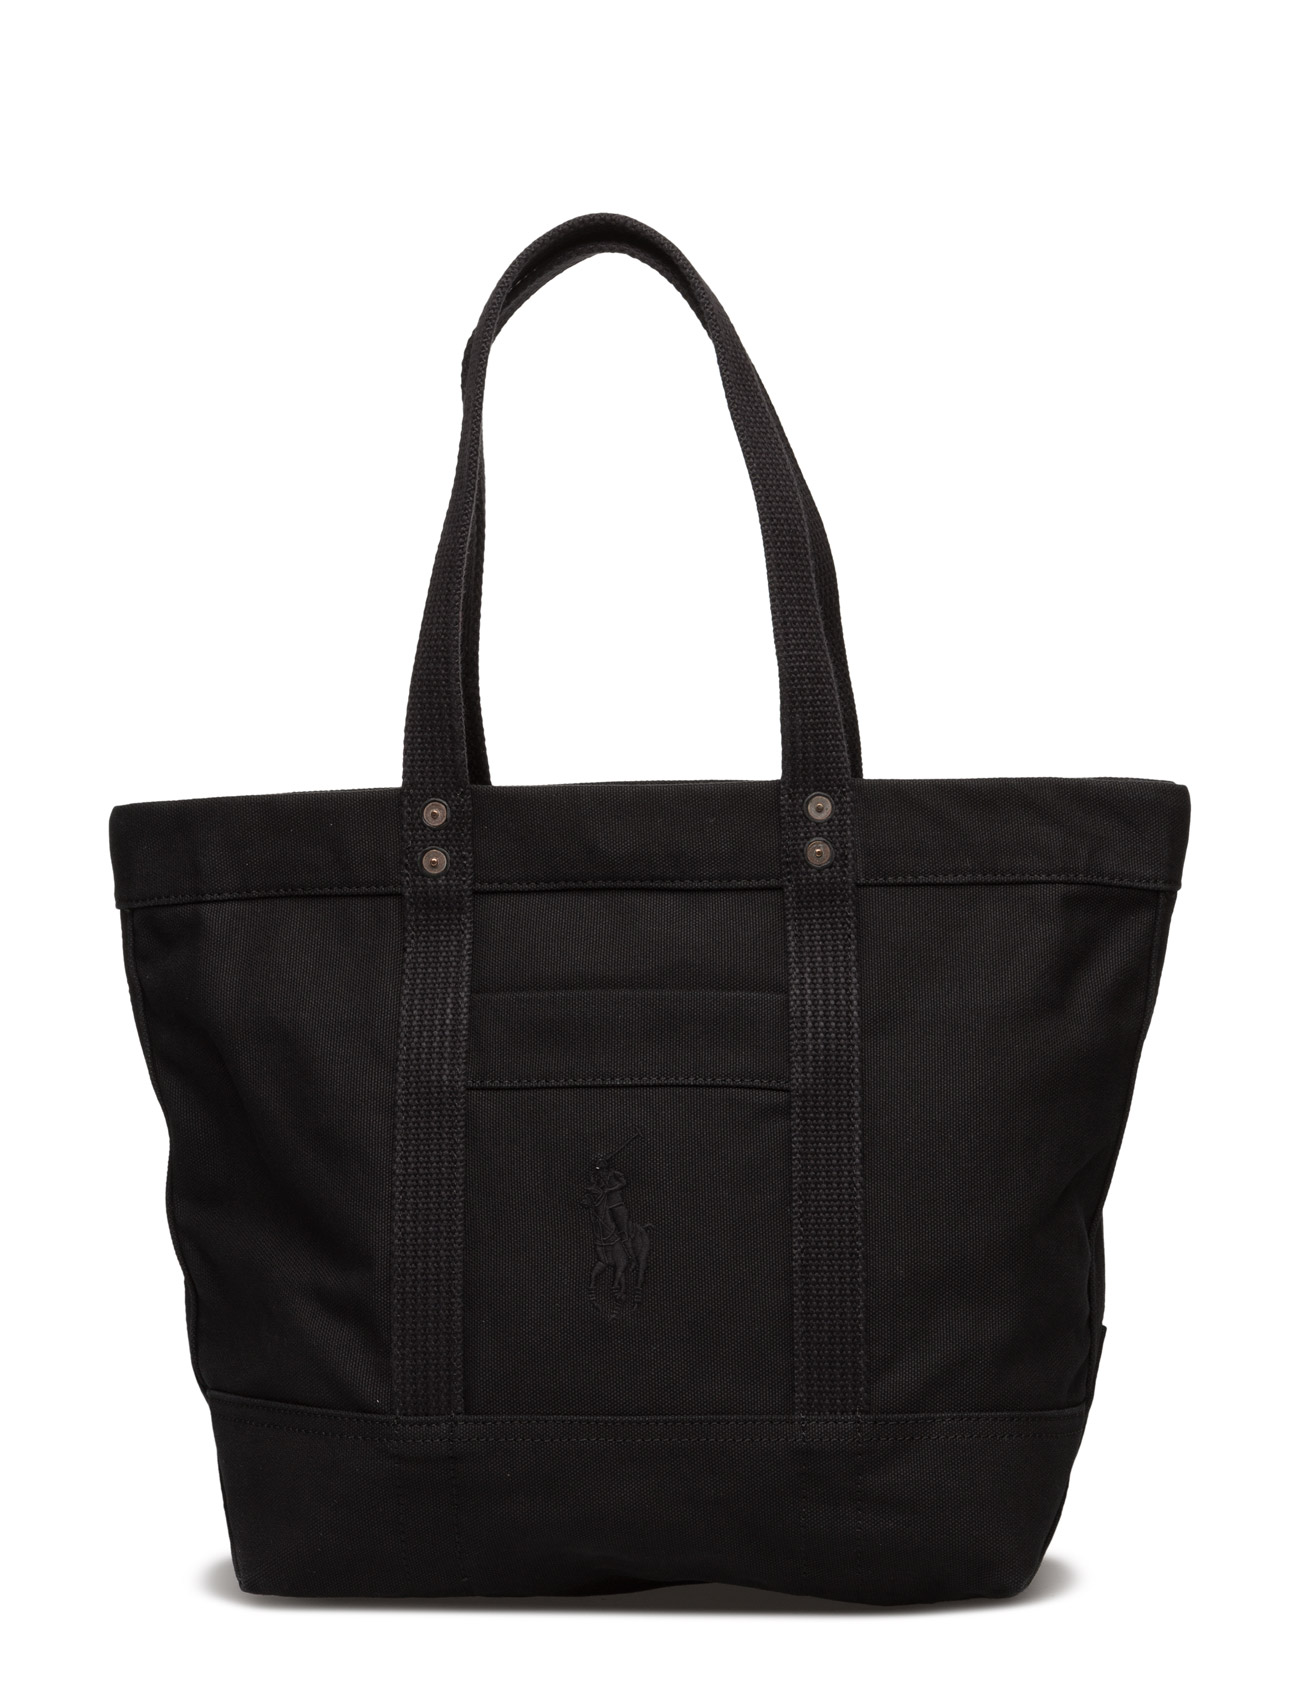 Polo Ralph Lauren PP TOTE TOTE CANVAS